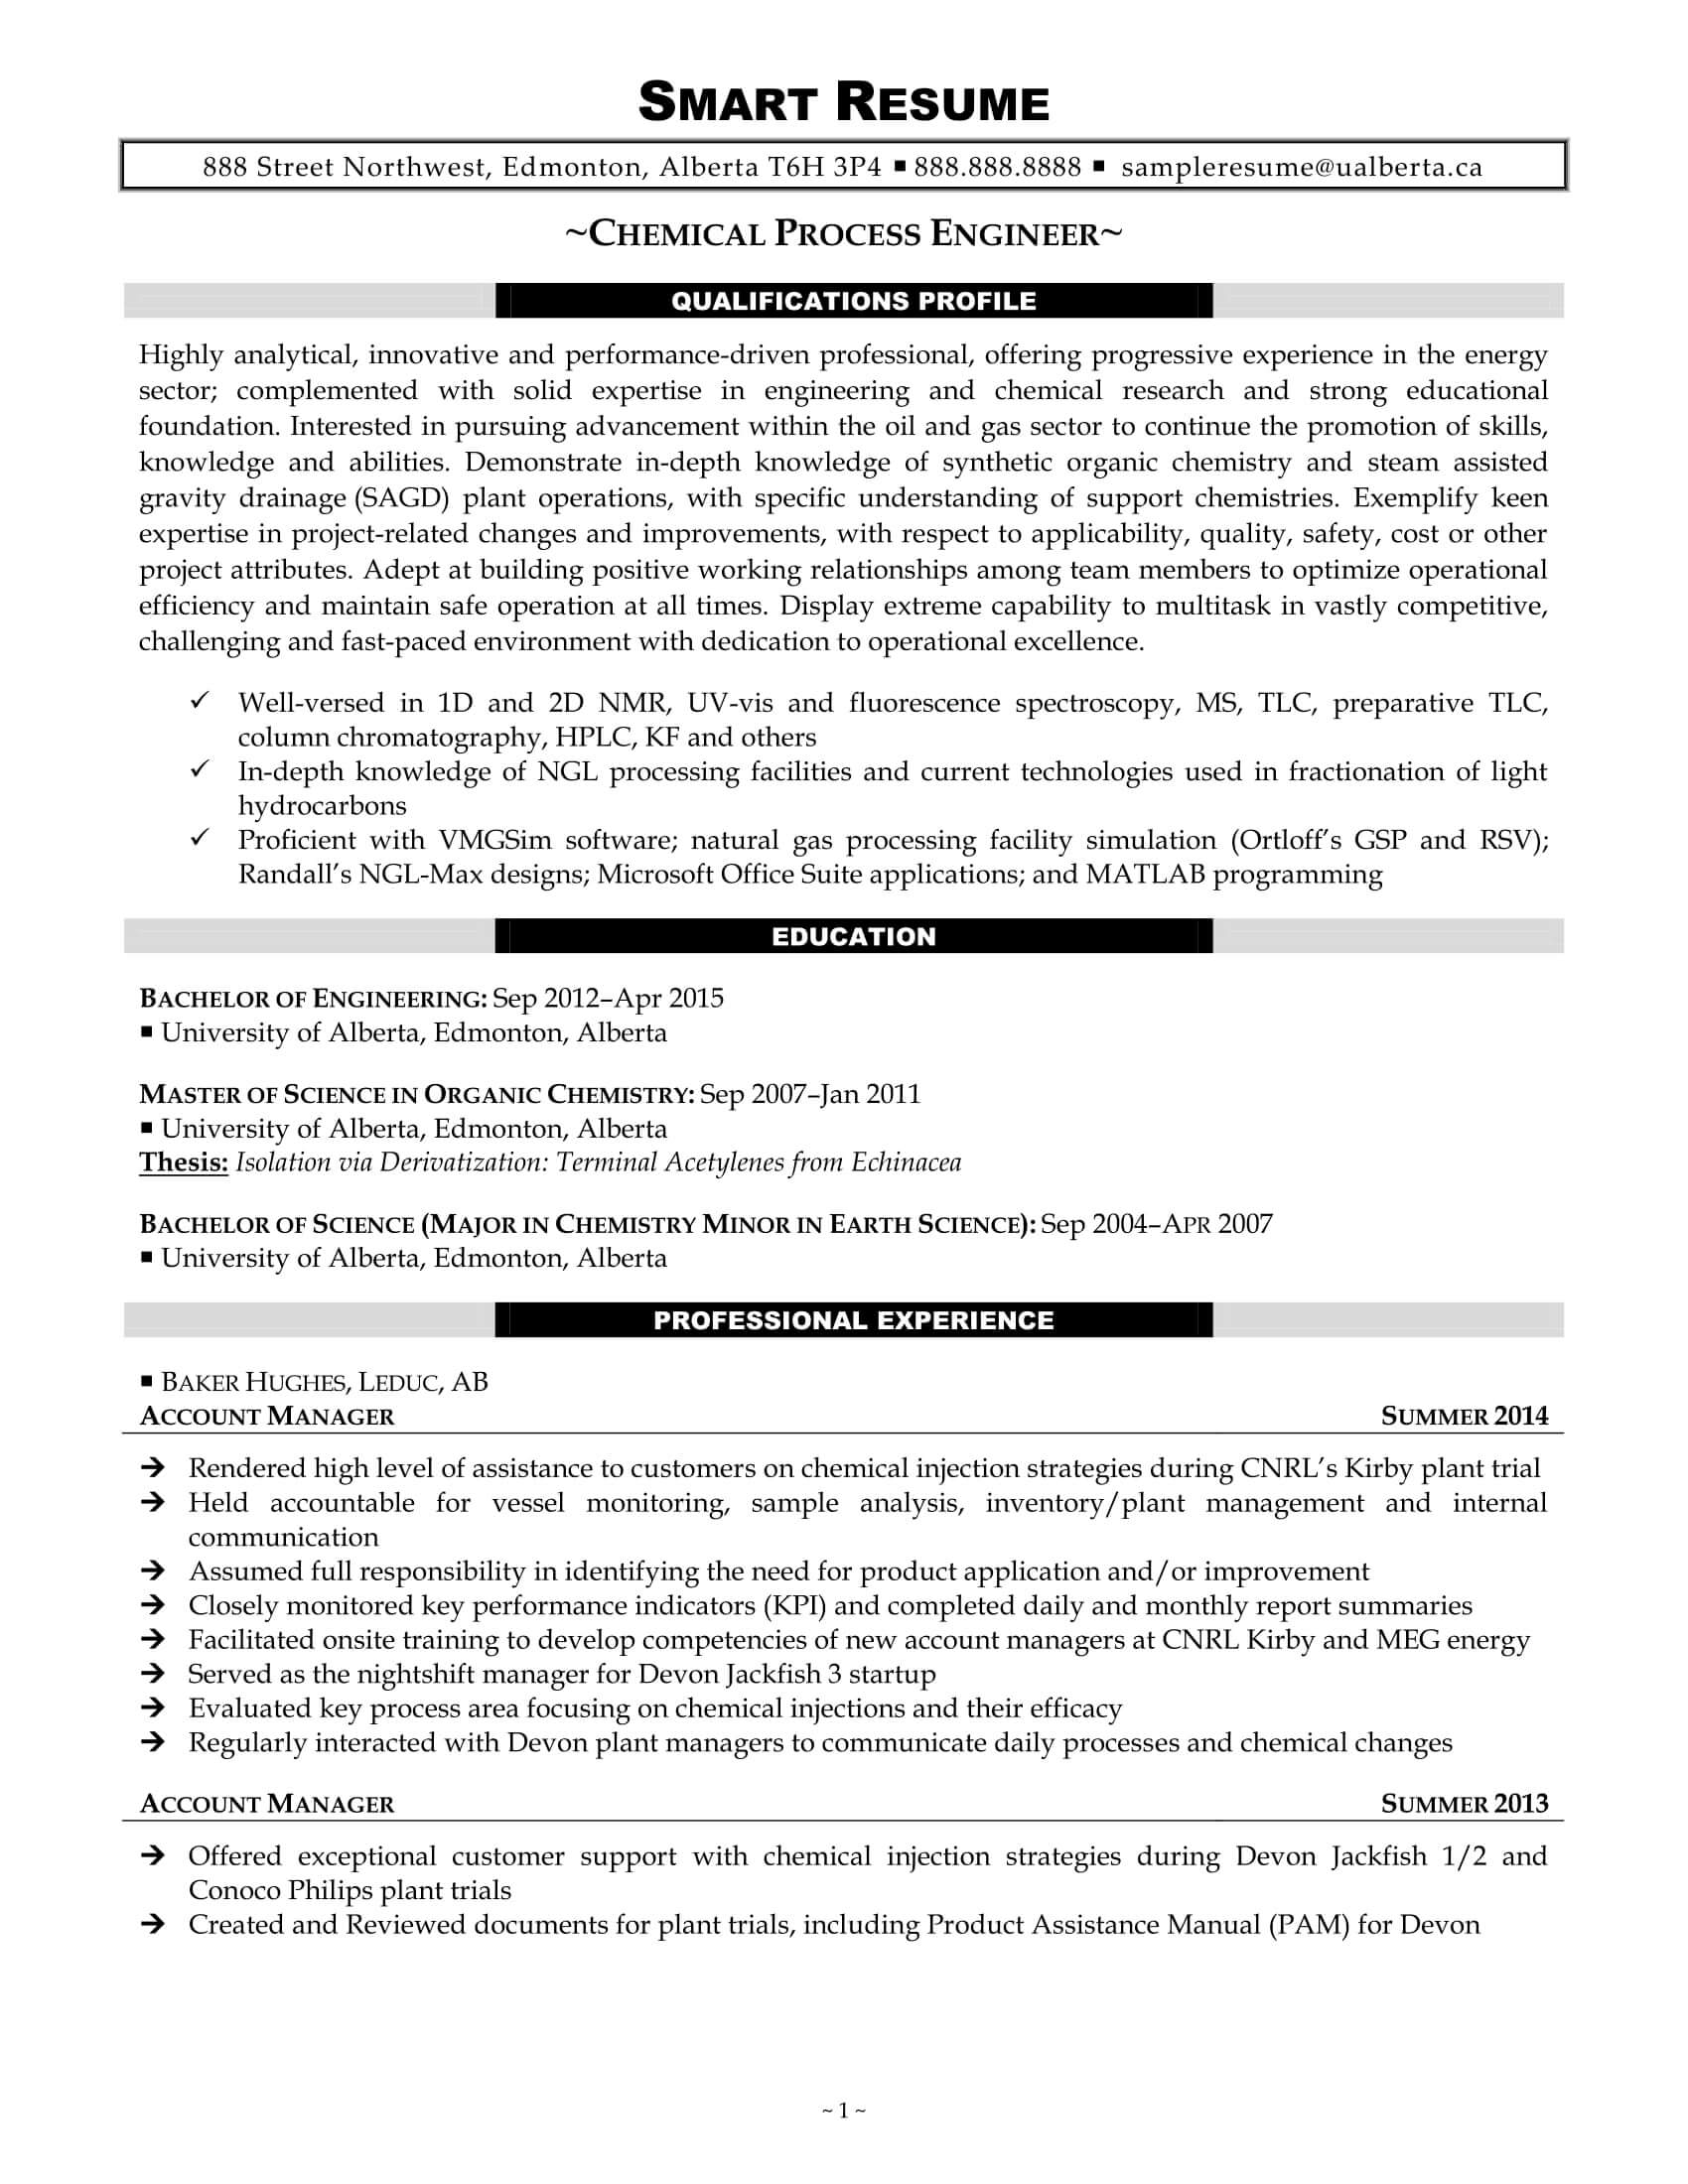 Resume Chemist Resume Skills chemist resume example best livecareer cover letter for analytical resume